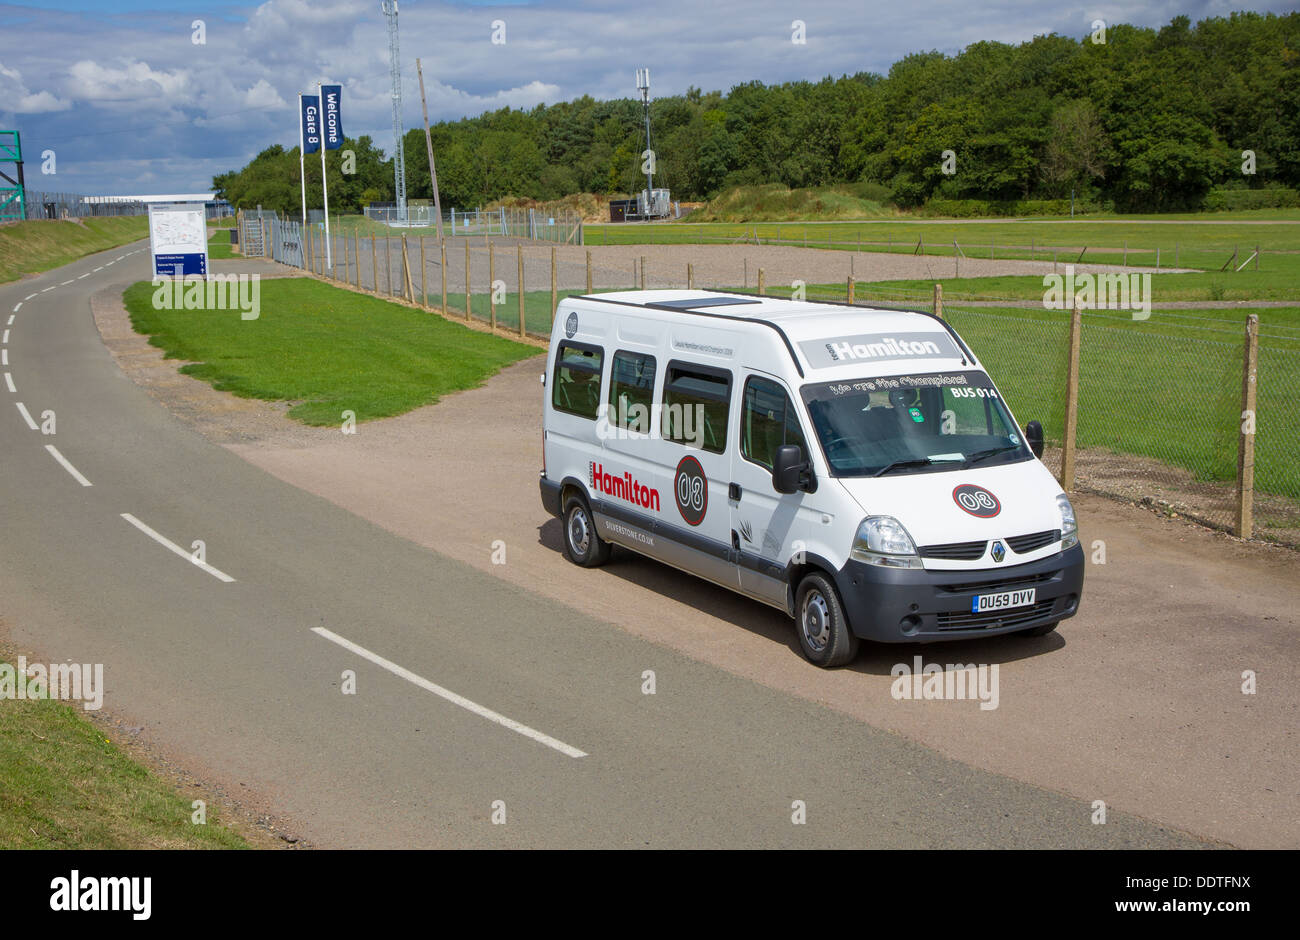 The Lewis Hamilton Minibus used for guided track tours at Silverstone Racing Circuit - Stock Image